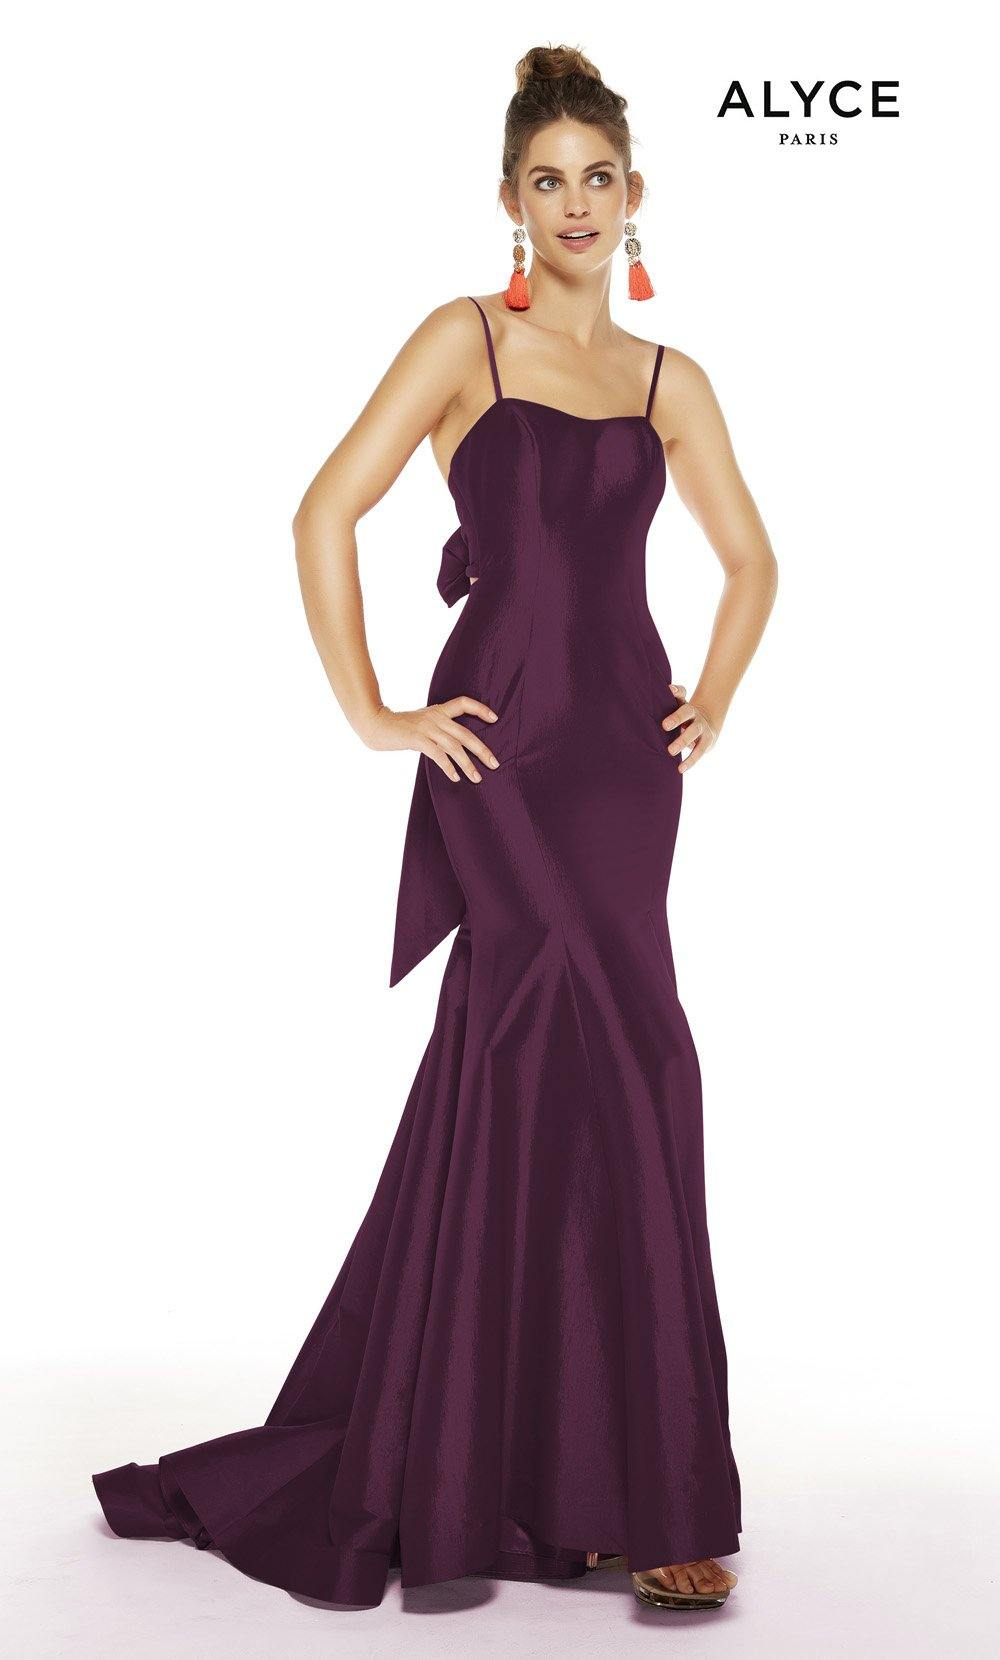 Black Plum formal dress with a squared neckline